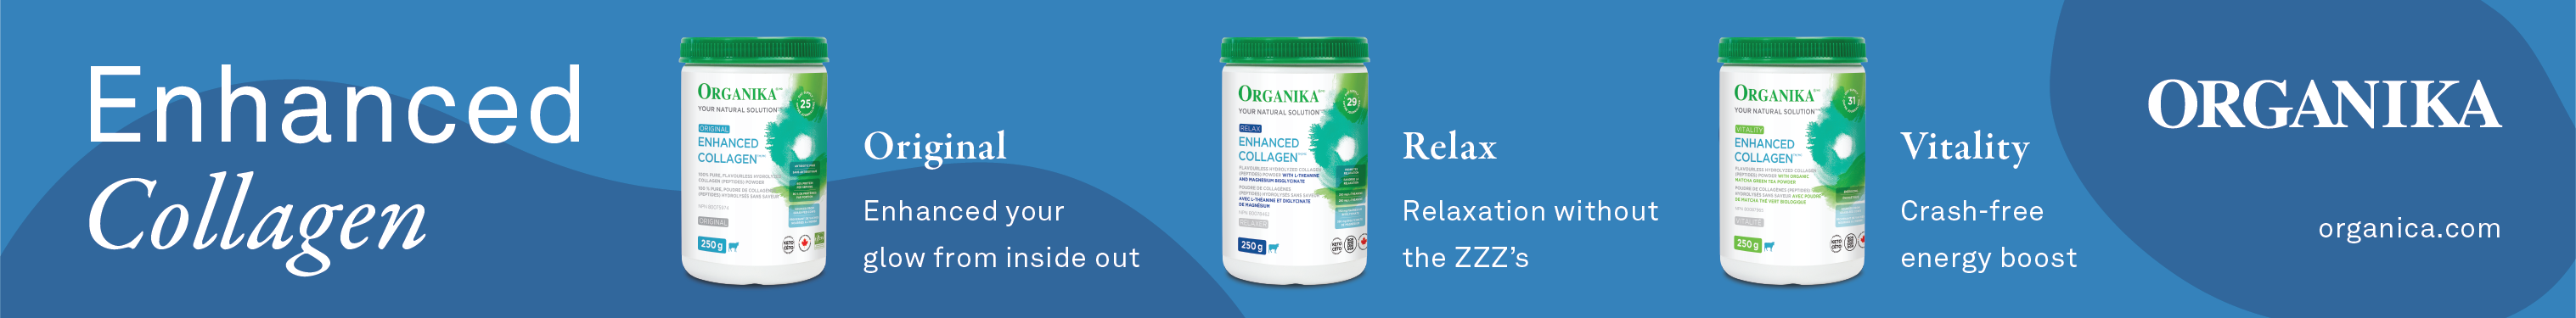 org-collagen-line-website-banner-en-2.png